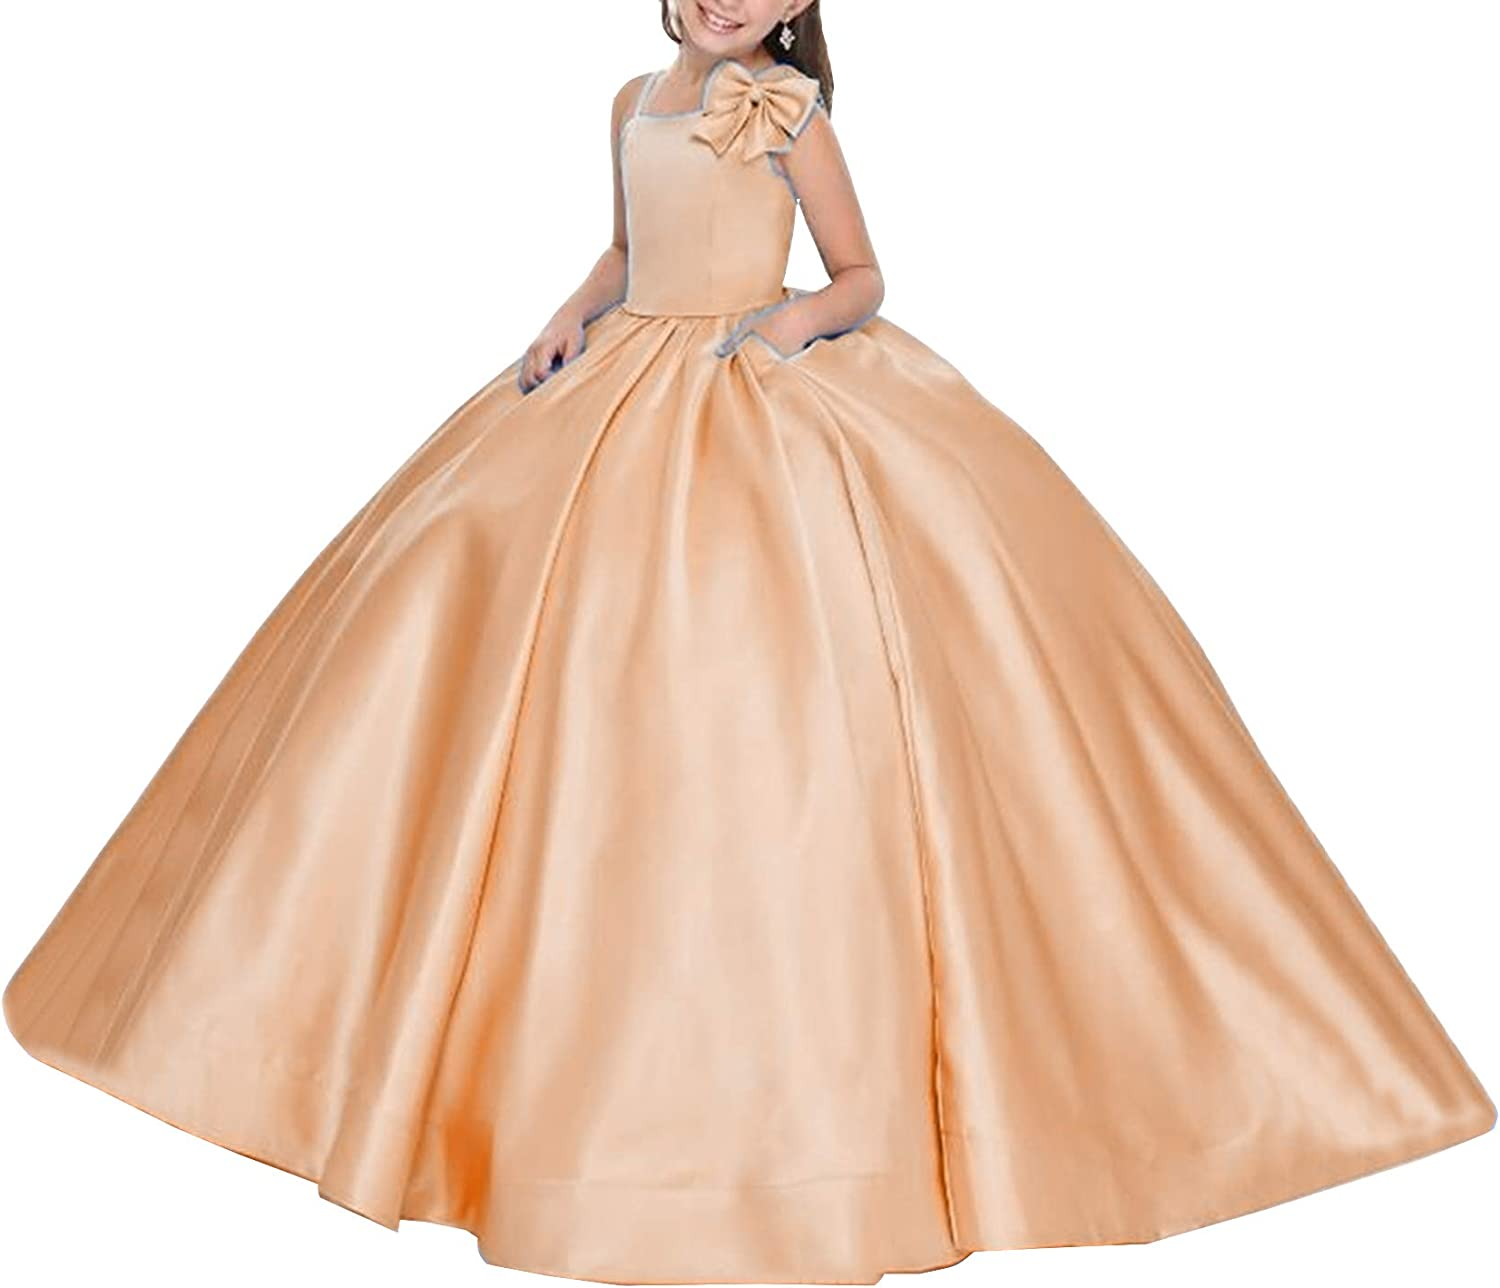 Honeydress Girl's Simple Bow Flower Girl Dresses Cold Shoulder with Pockets Girls Pageant Dress